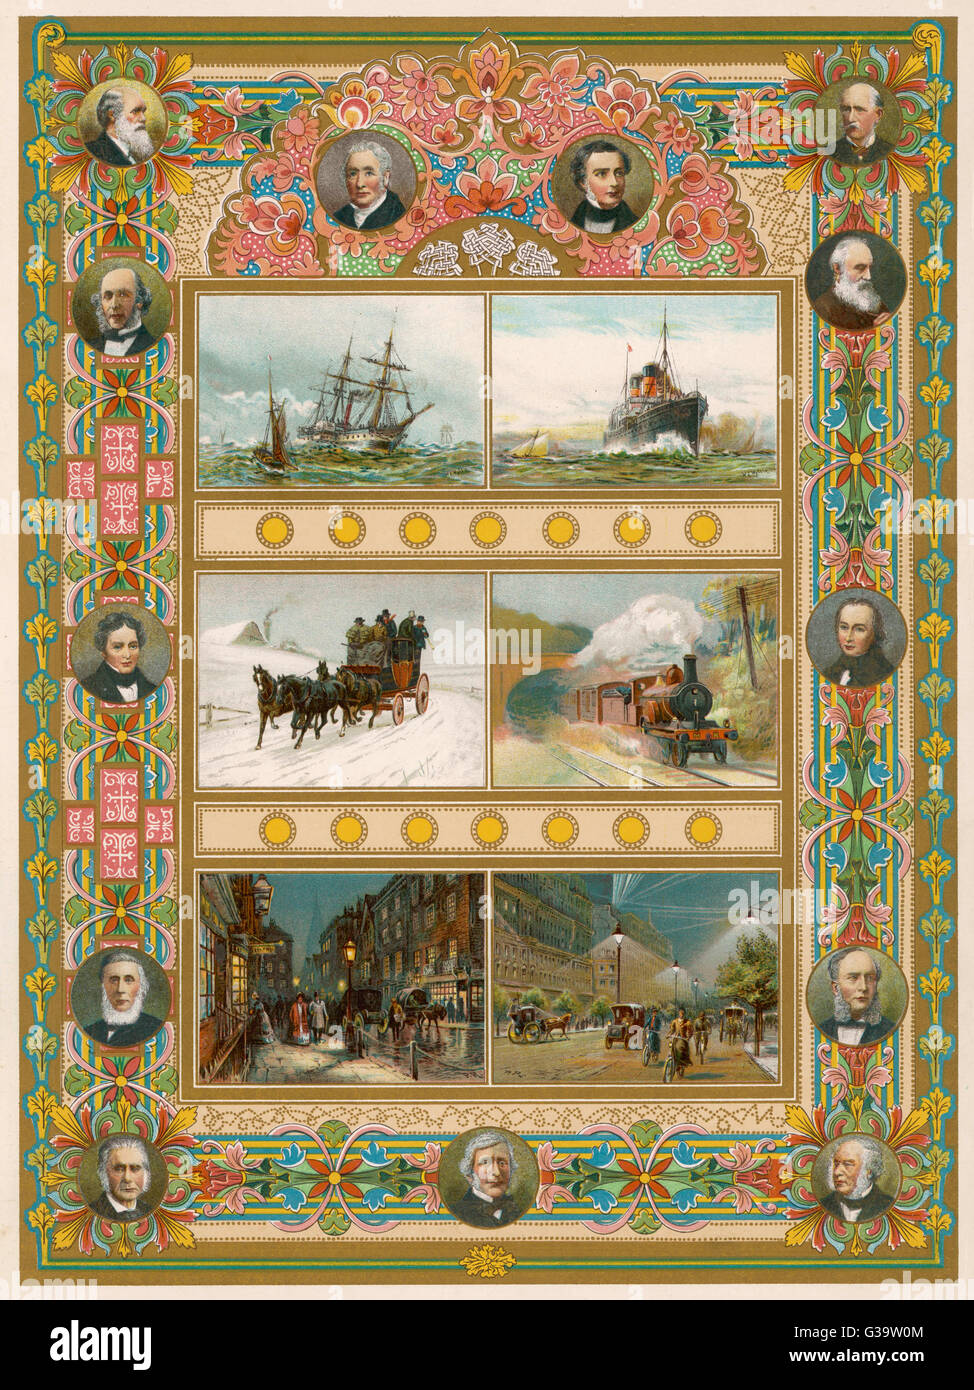 Six scenes illustrating  technological progress  during Queen Victoria's reign,  including a steamship, a  train, - Stock Image